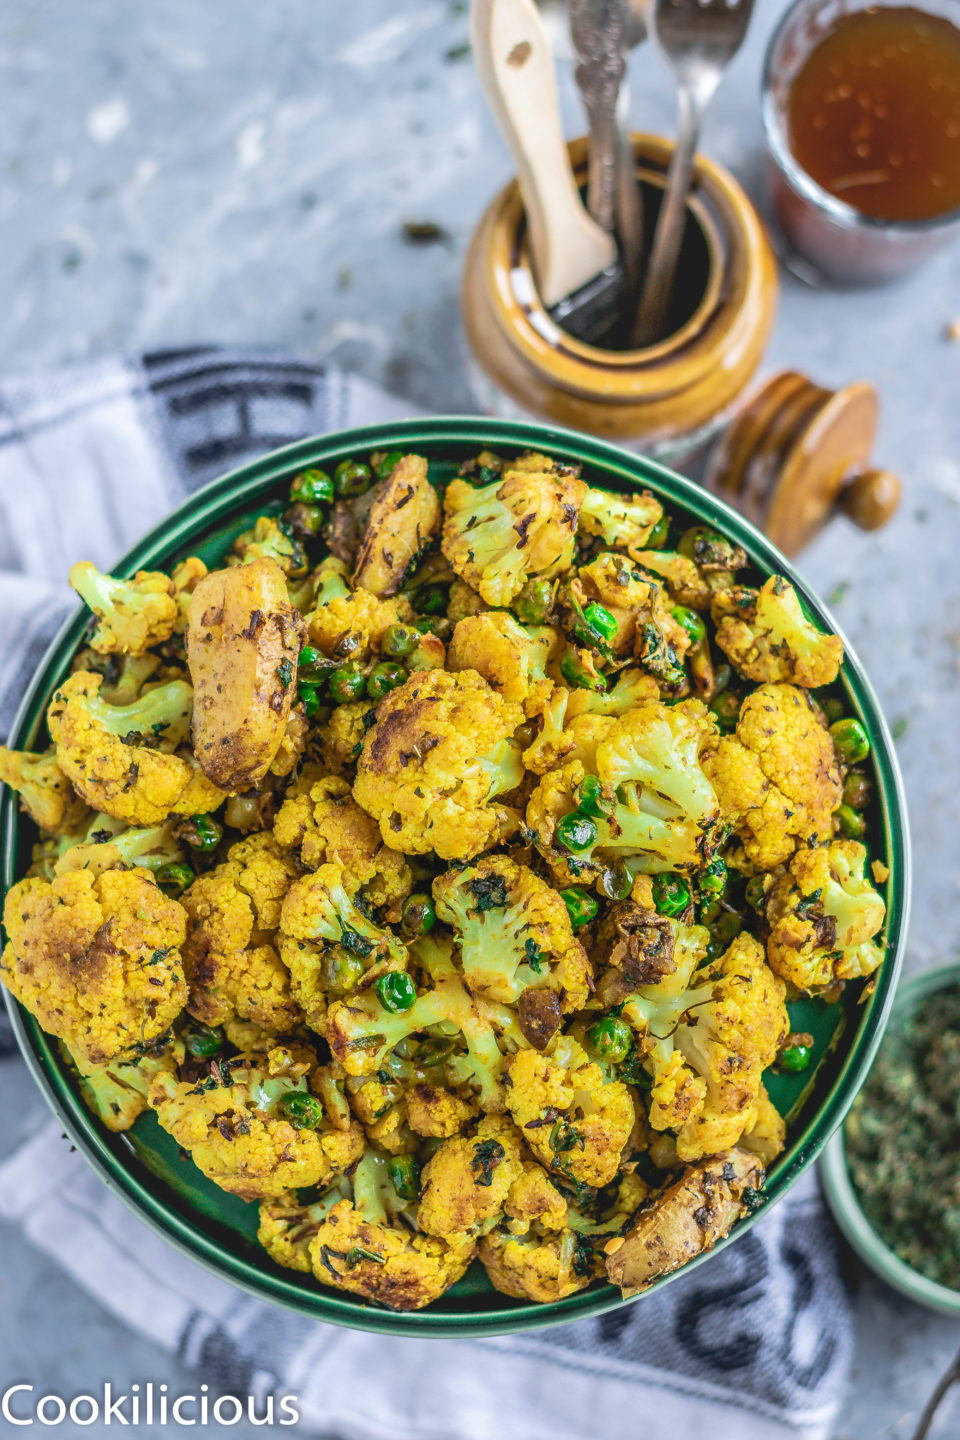 top angle shot of a plate filled with Gobi Methi or cauliflower fry